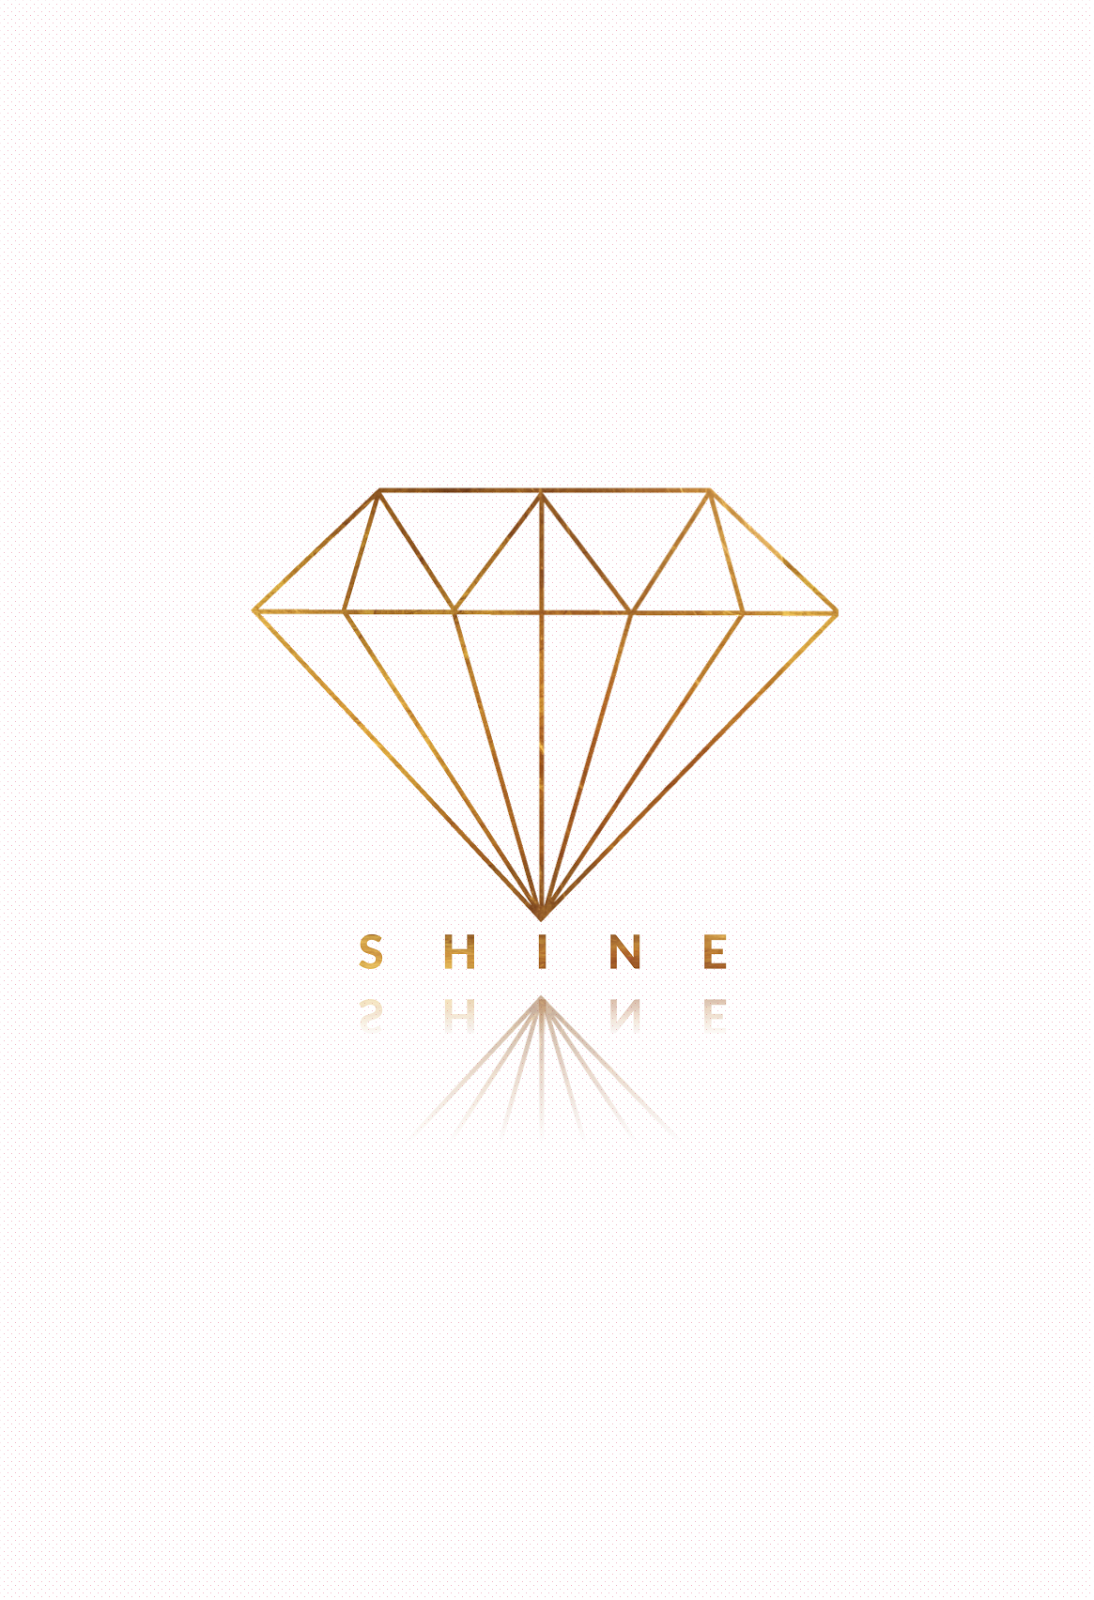 Shine Bright Like A Diamond Wallpaper